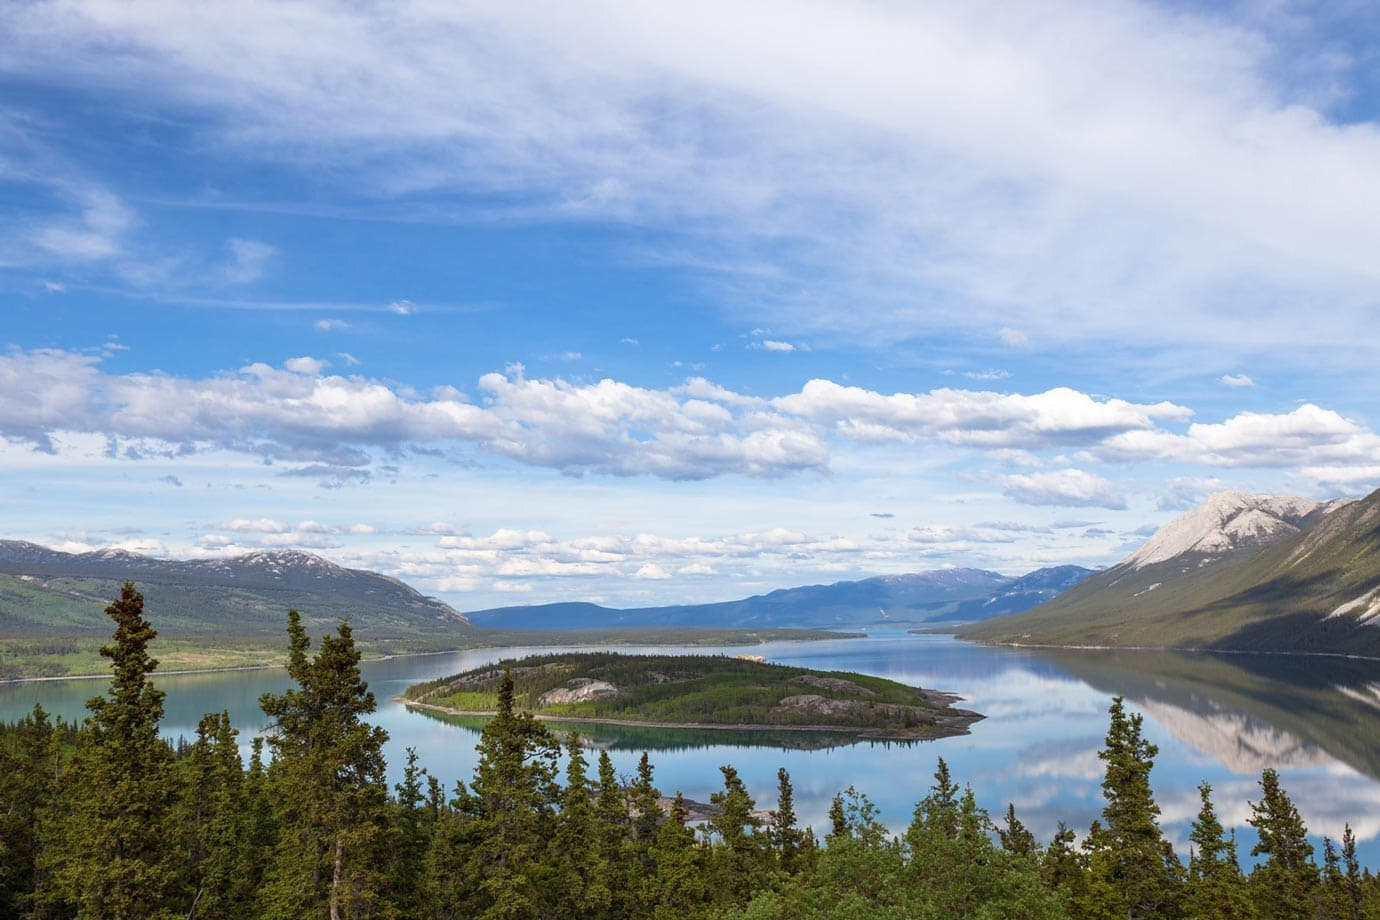 Photos of the Yukon